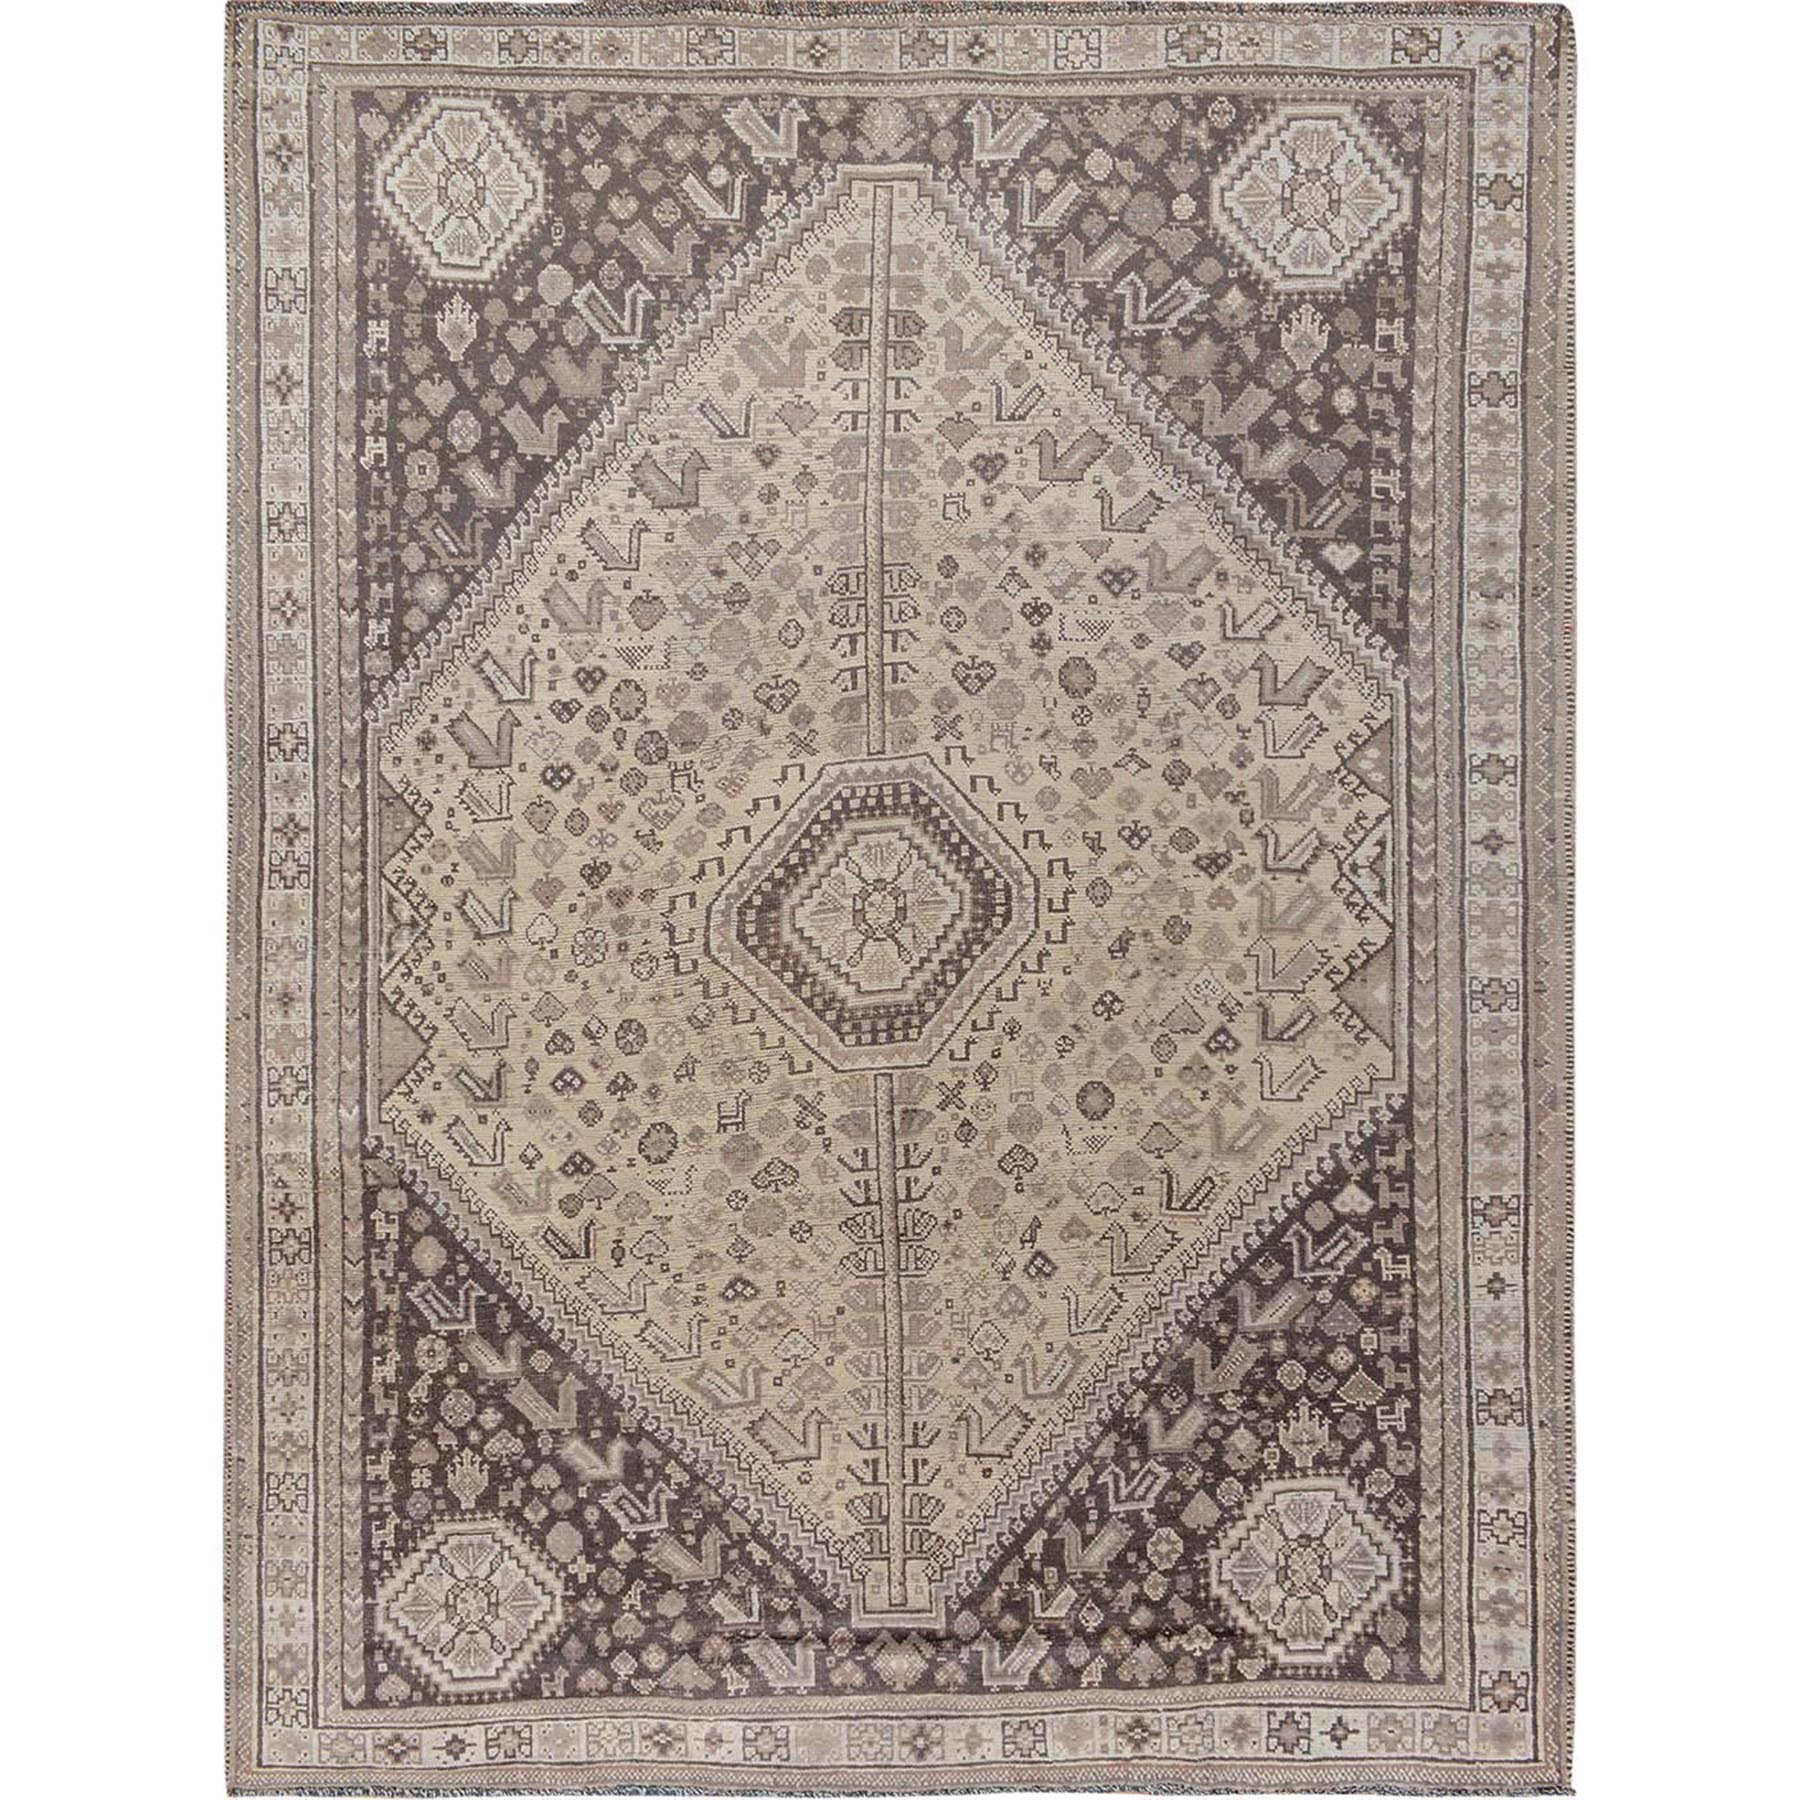 "7'2""x9'5"" Natural Colors Vintage And Worn Down Persian Shiraz Pure Wool Hand Woven Oriental Rug"